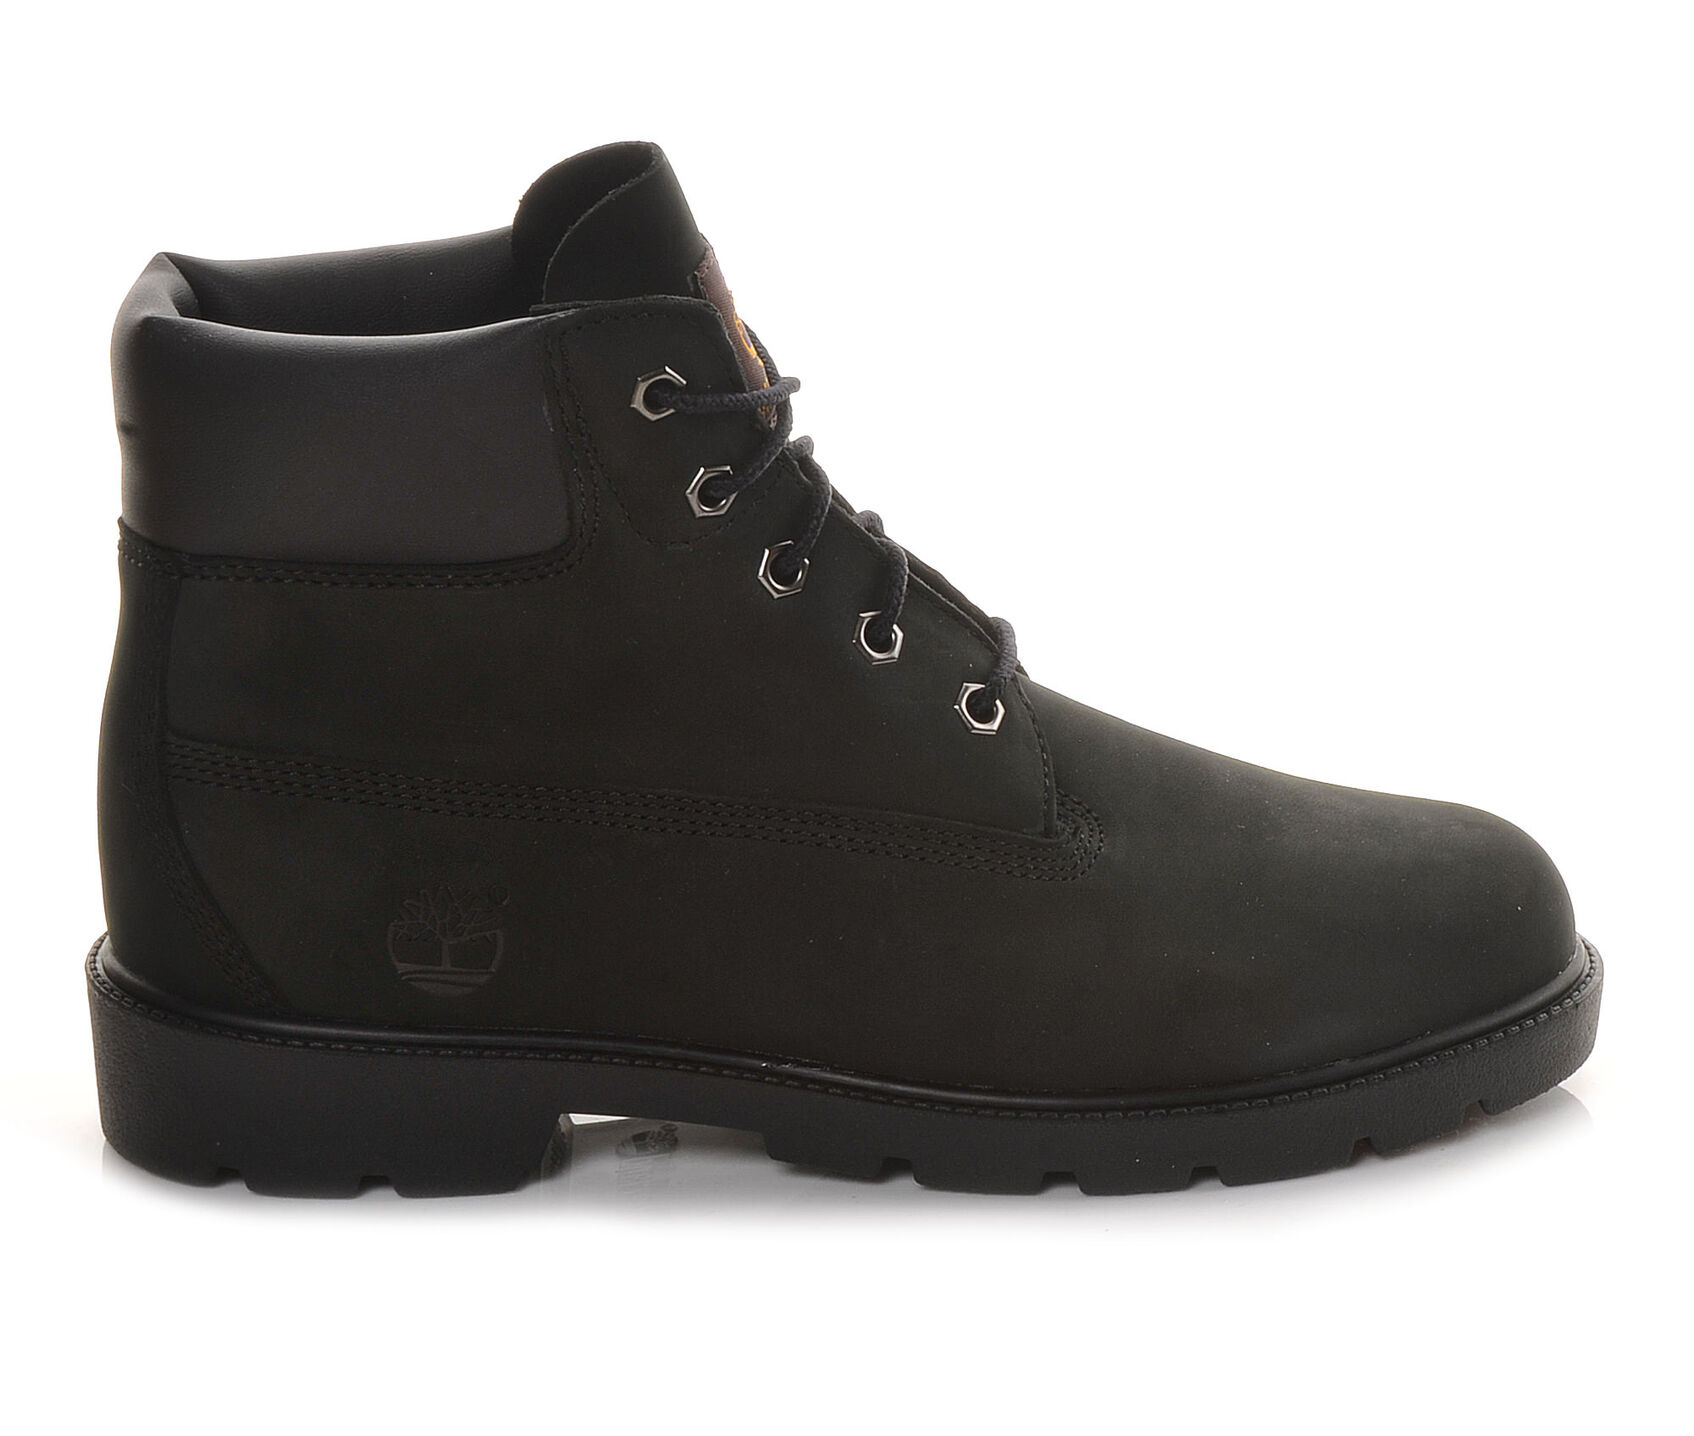 17a297db04 ... Timberland Big Kid 10910 6 Inch Classic Boots. Previous